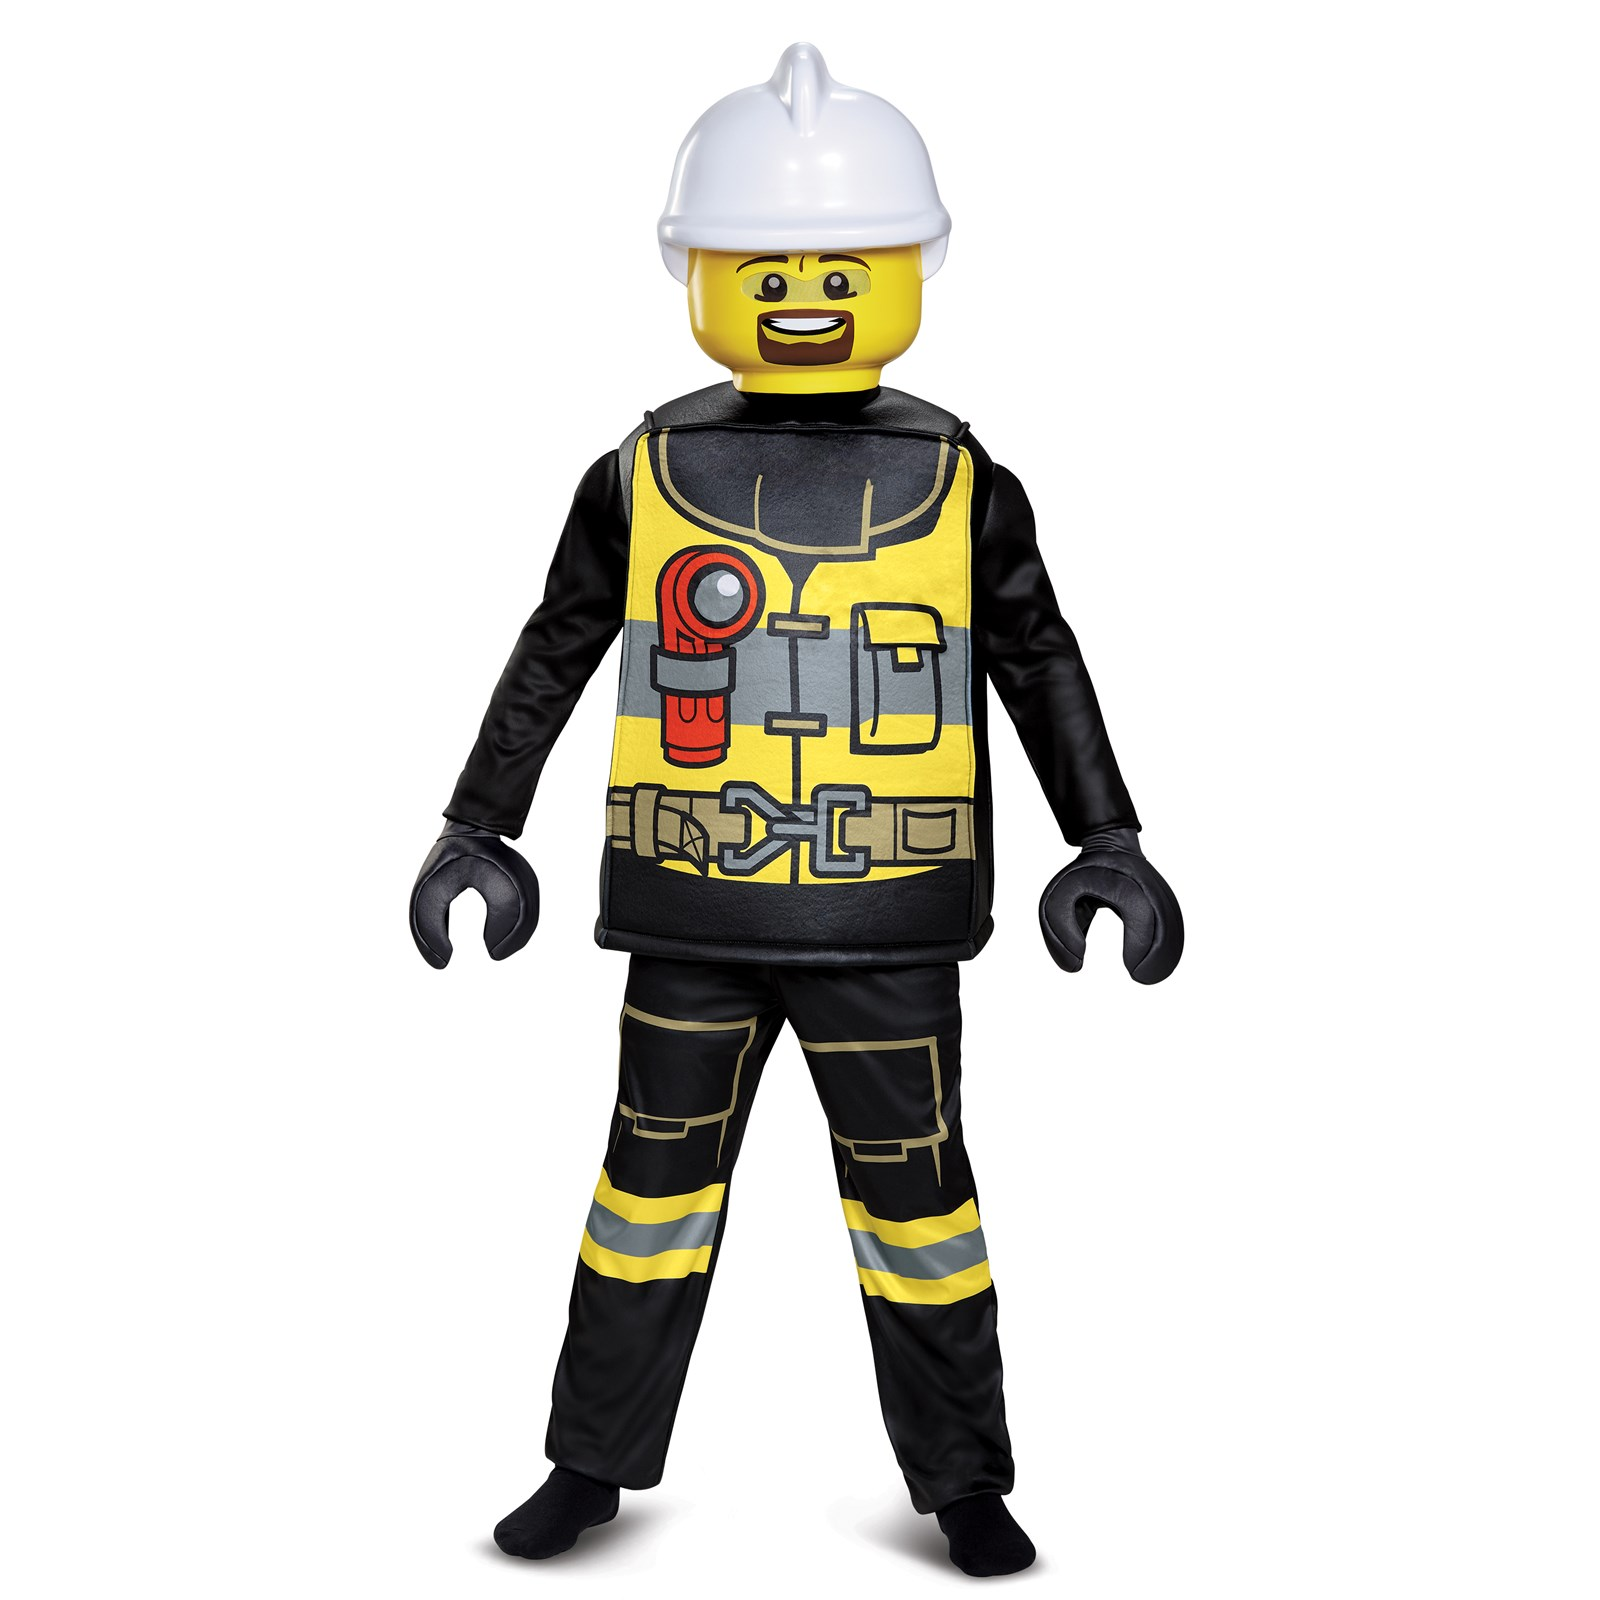 Boys Firefighter Deluxe Costume by Disguise